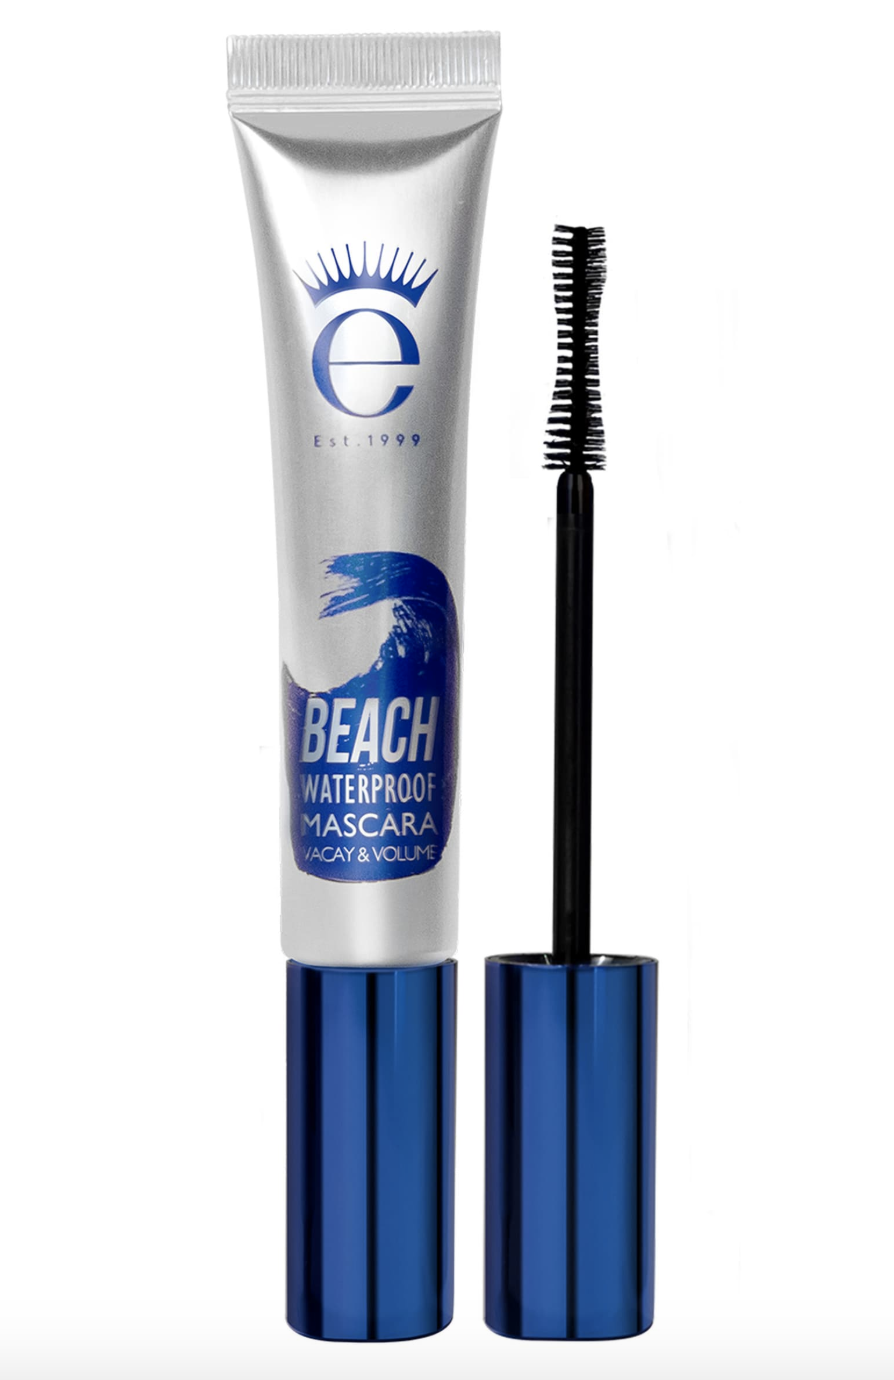 Eyeko beach waterproof mascara in black